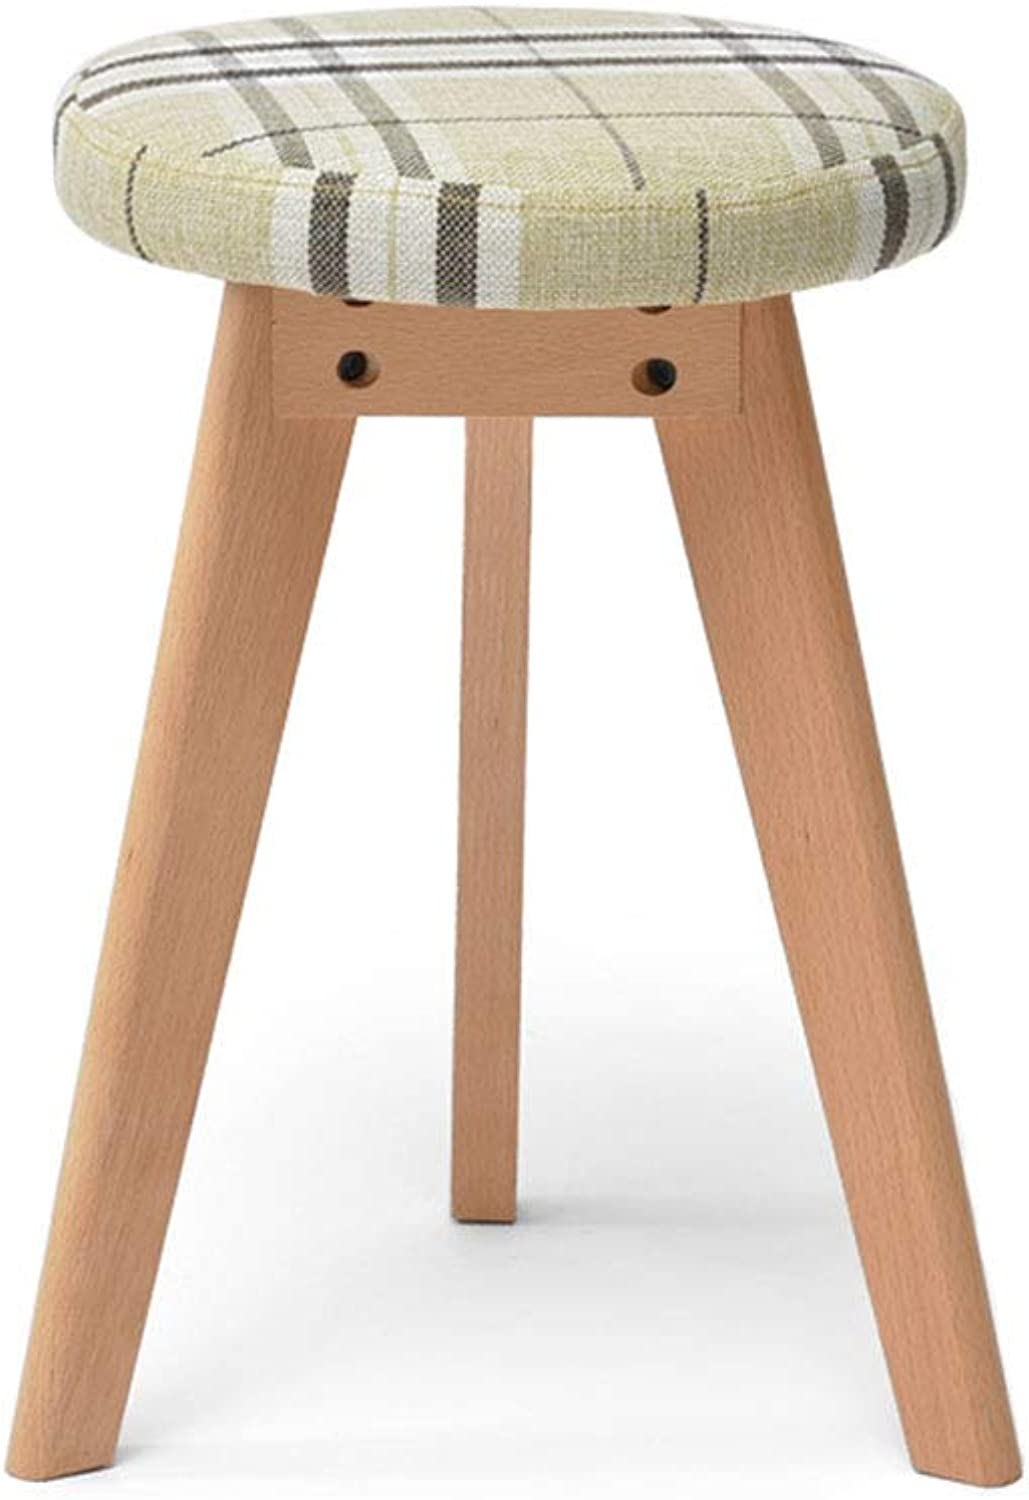 Household Solid Wood Stools Dressing Stools Makeup Stools Fabric Sofa Stools 2 colors Optional (color   B)